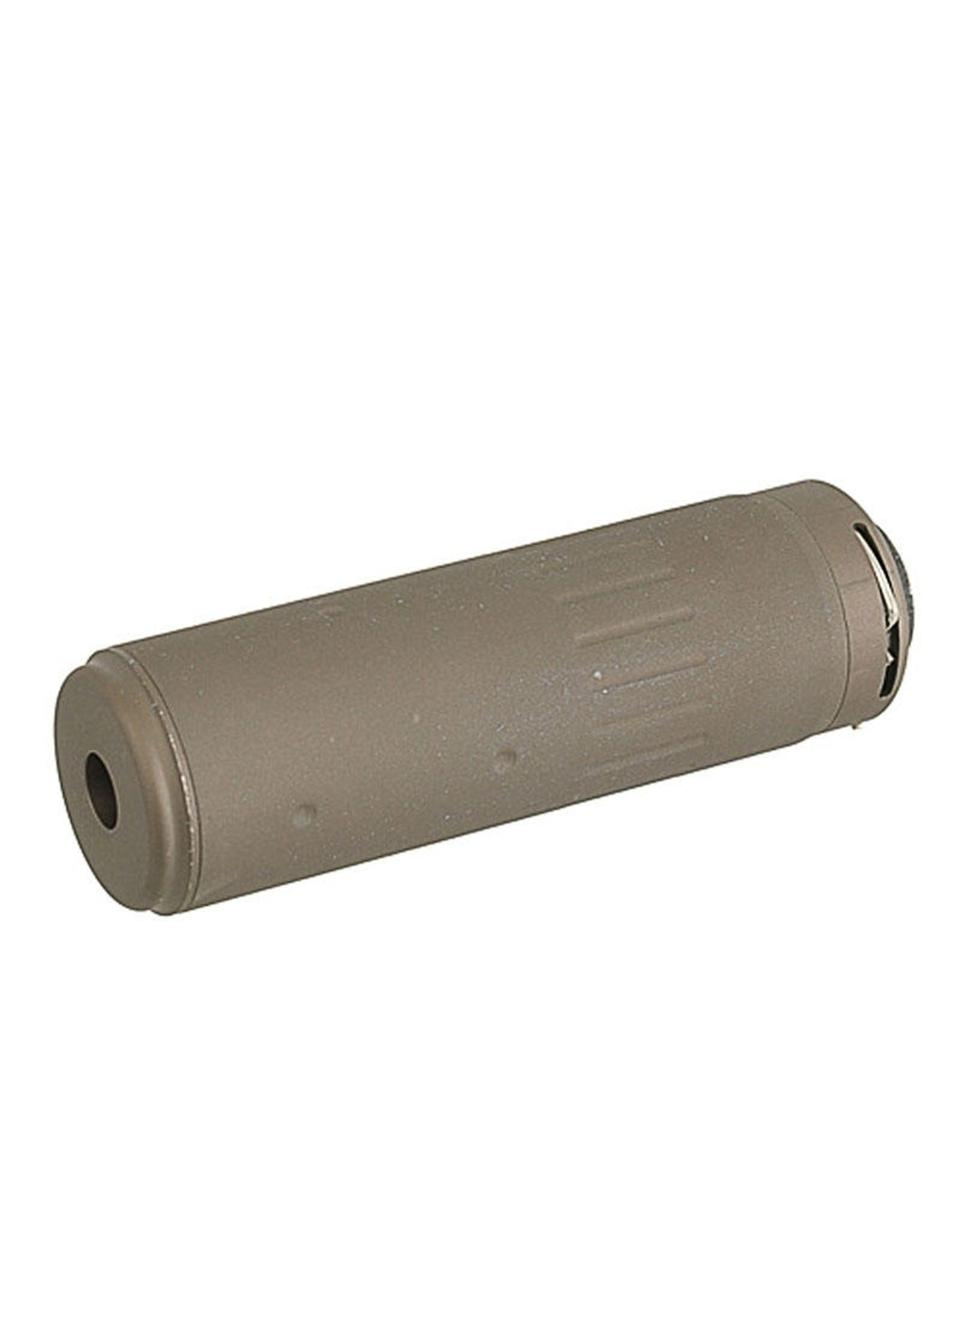 AAC SHORT QD SILENCER TAN